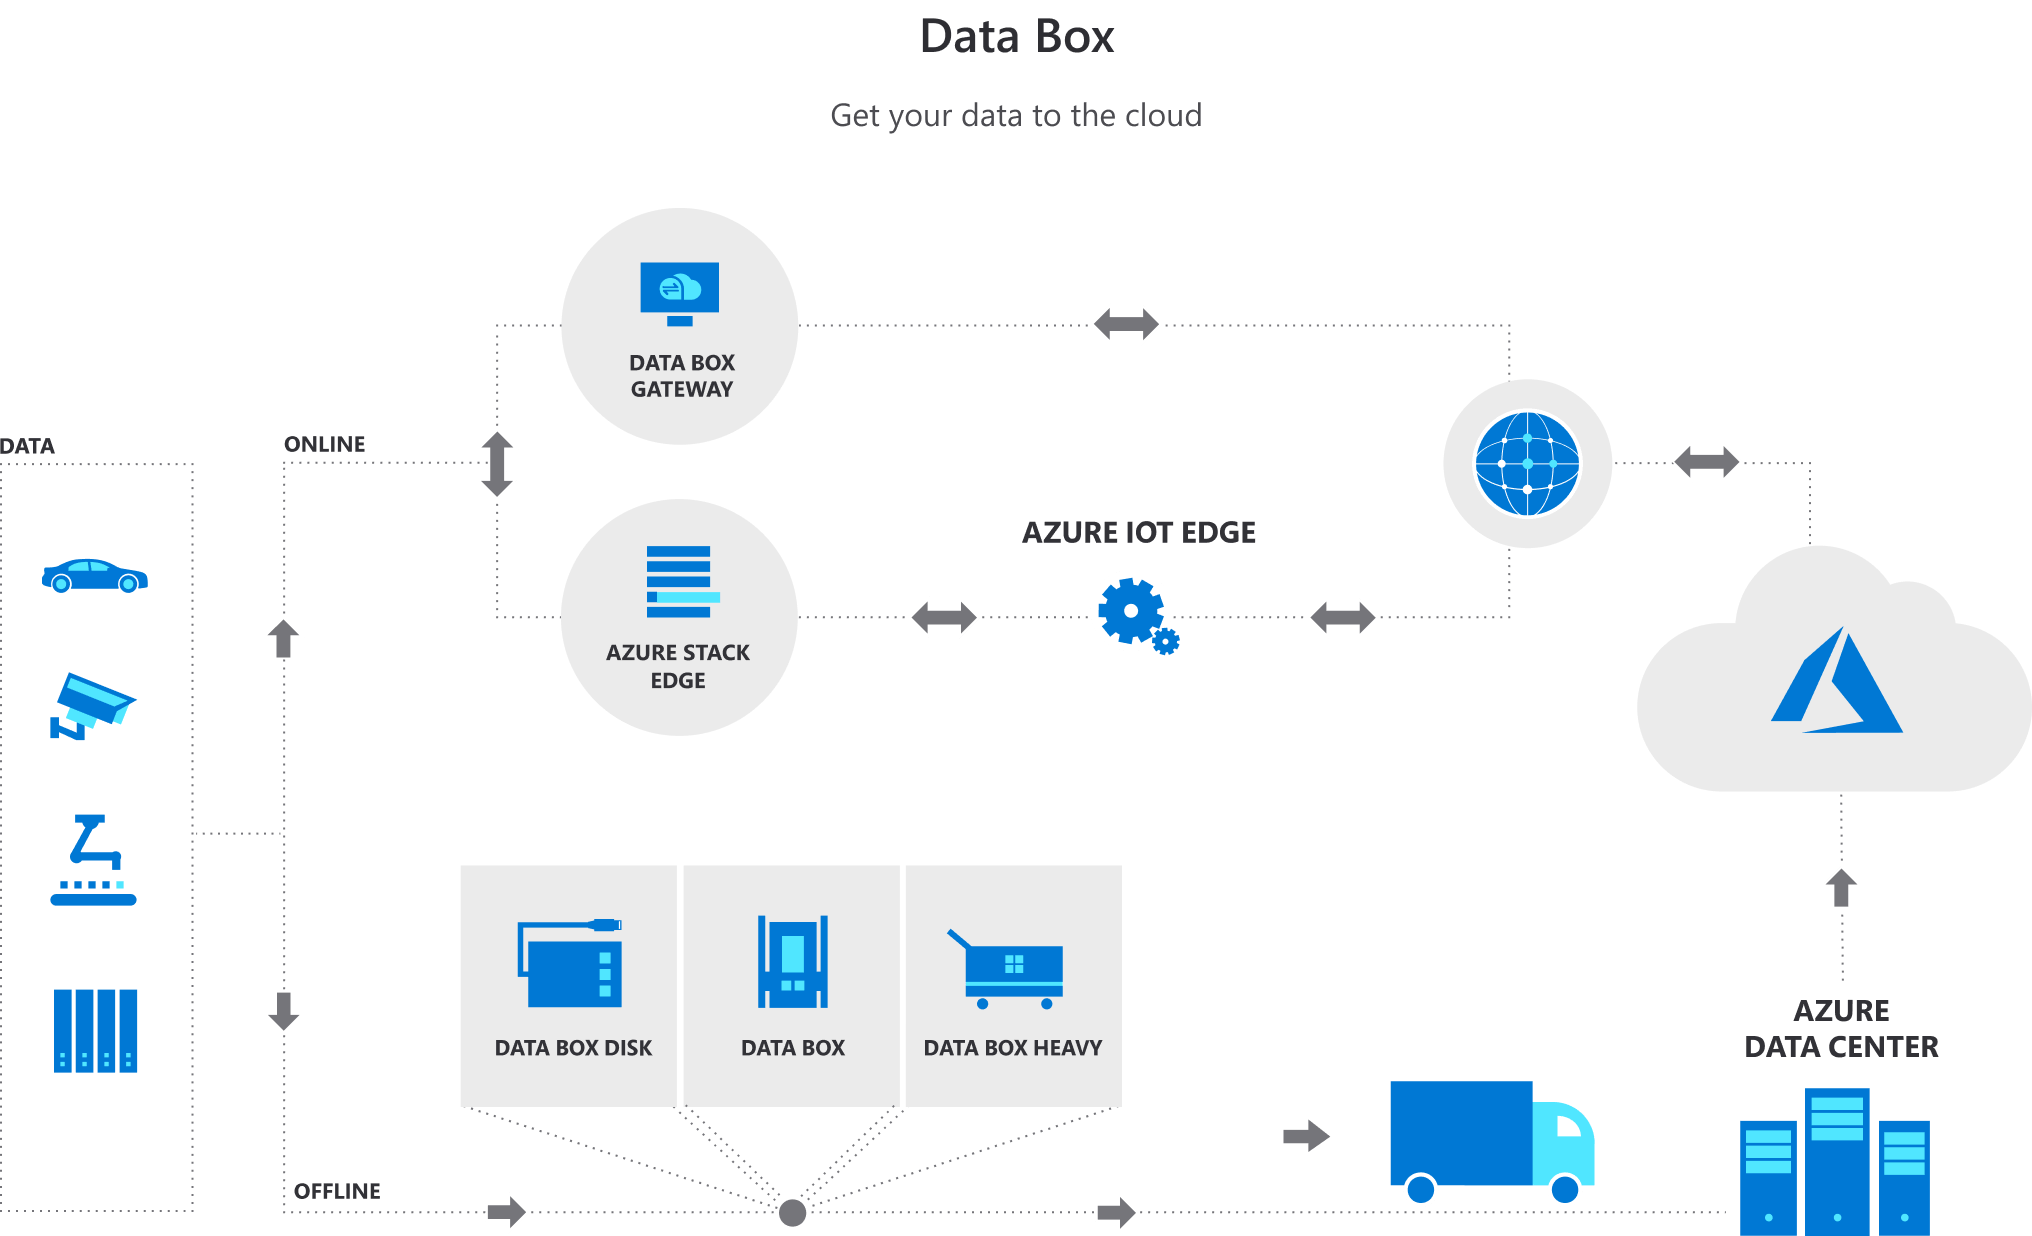 Data Box – hämta dina data till molnet med Azure Stack Edge